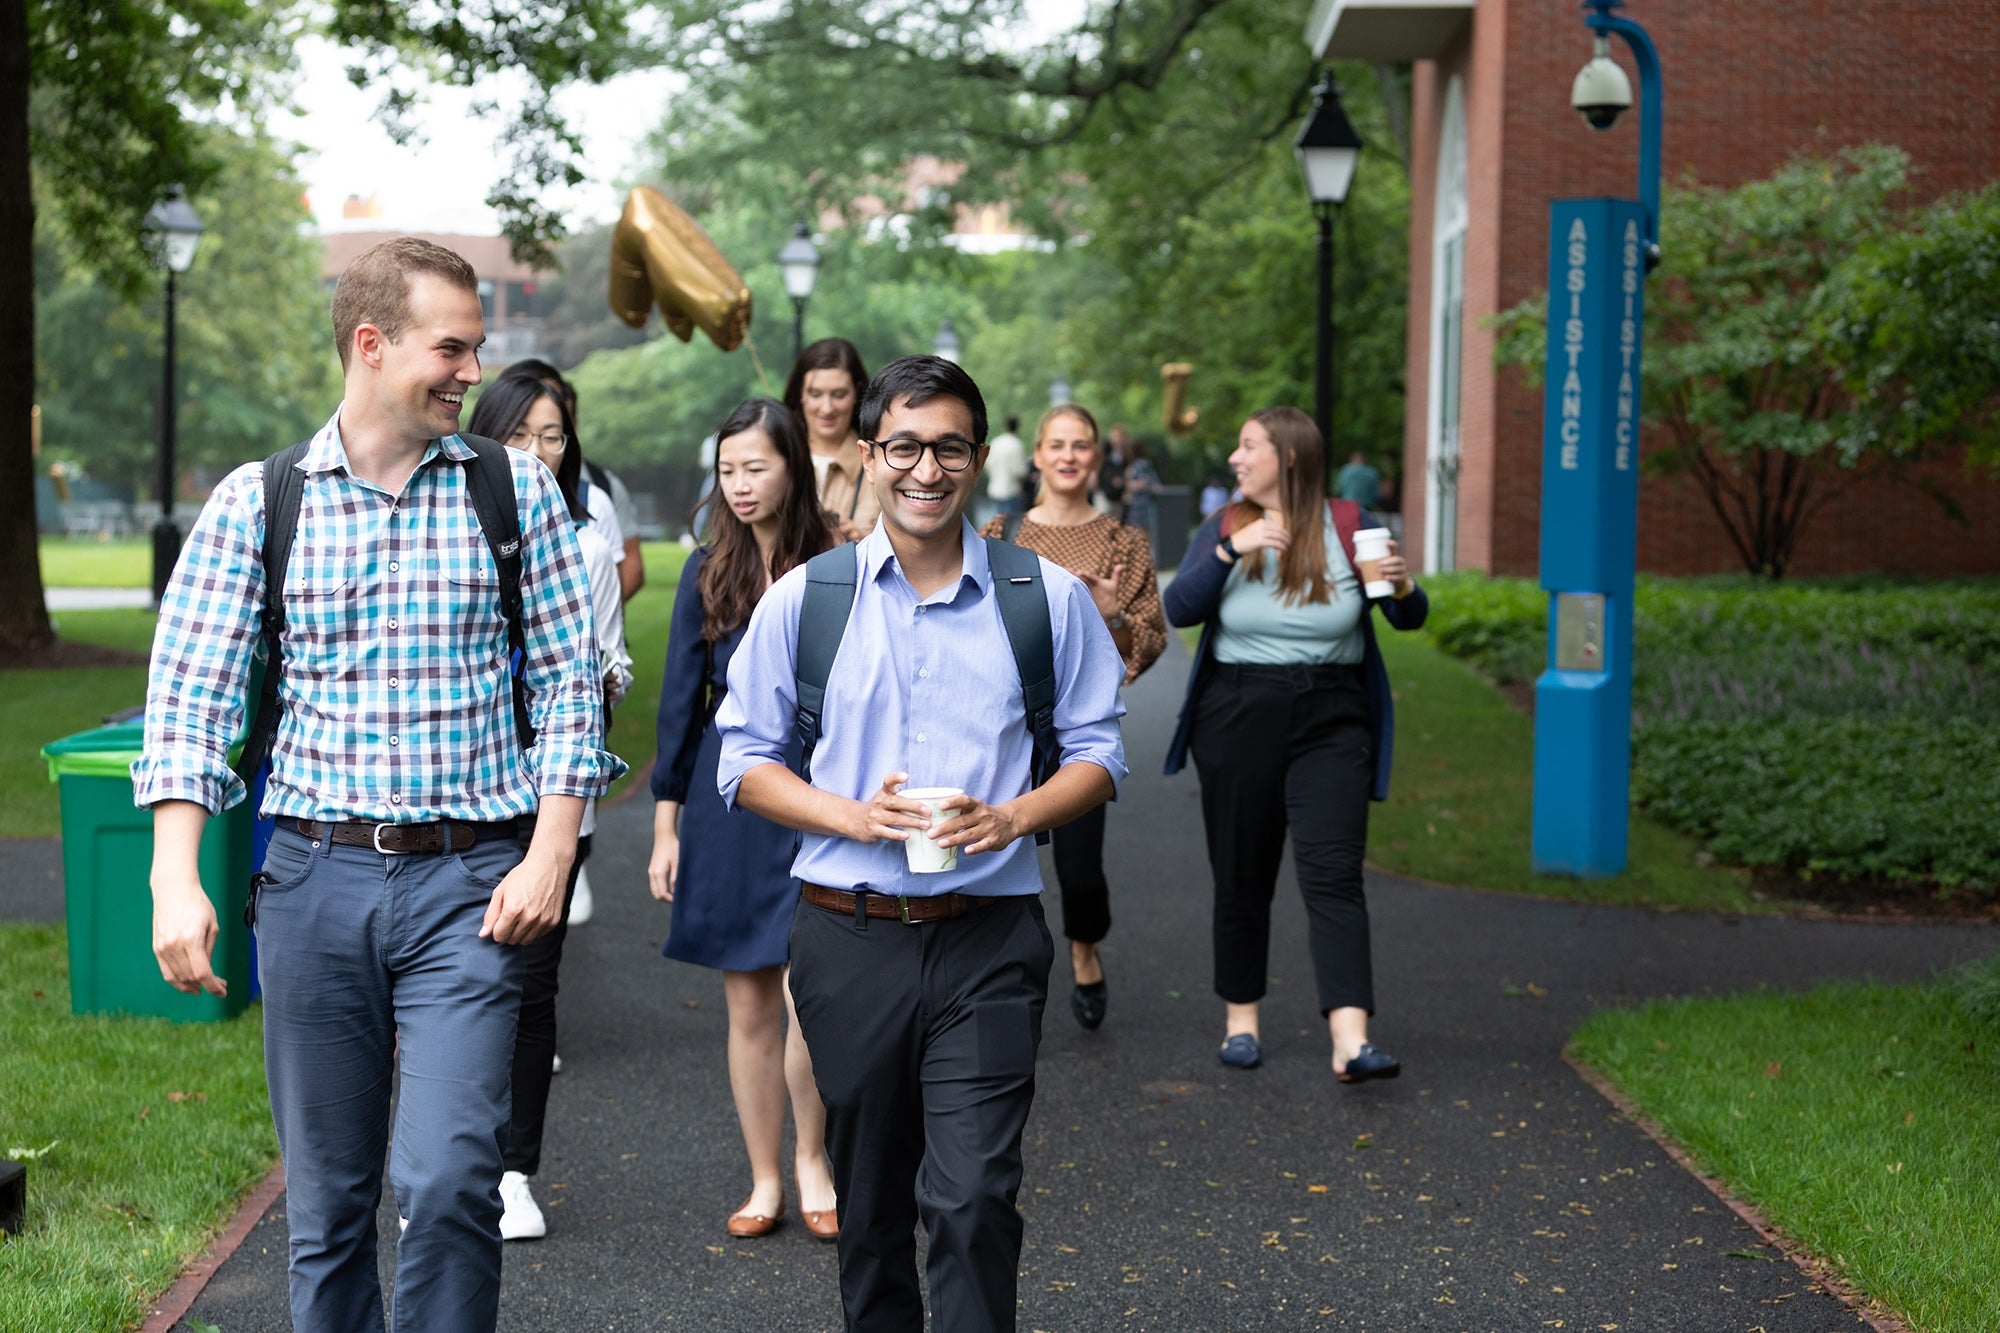 A group of students walk together on campus